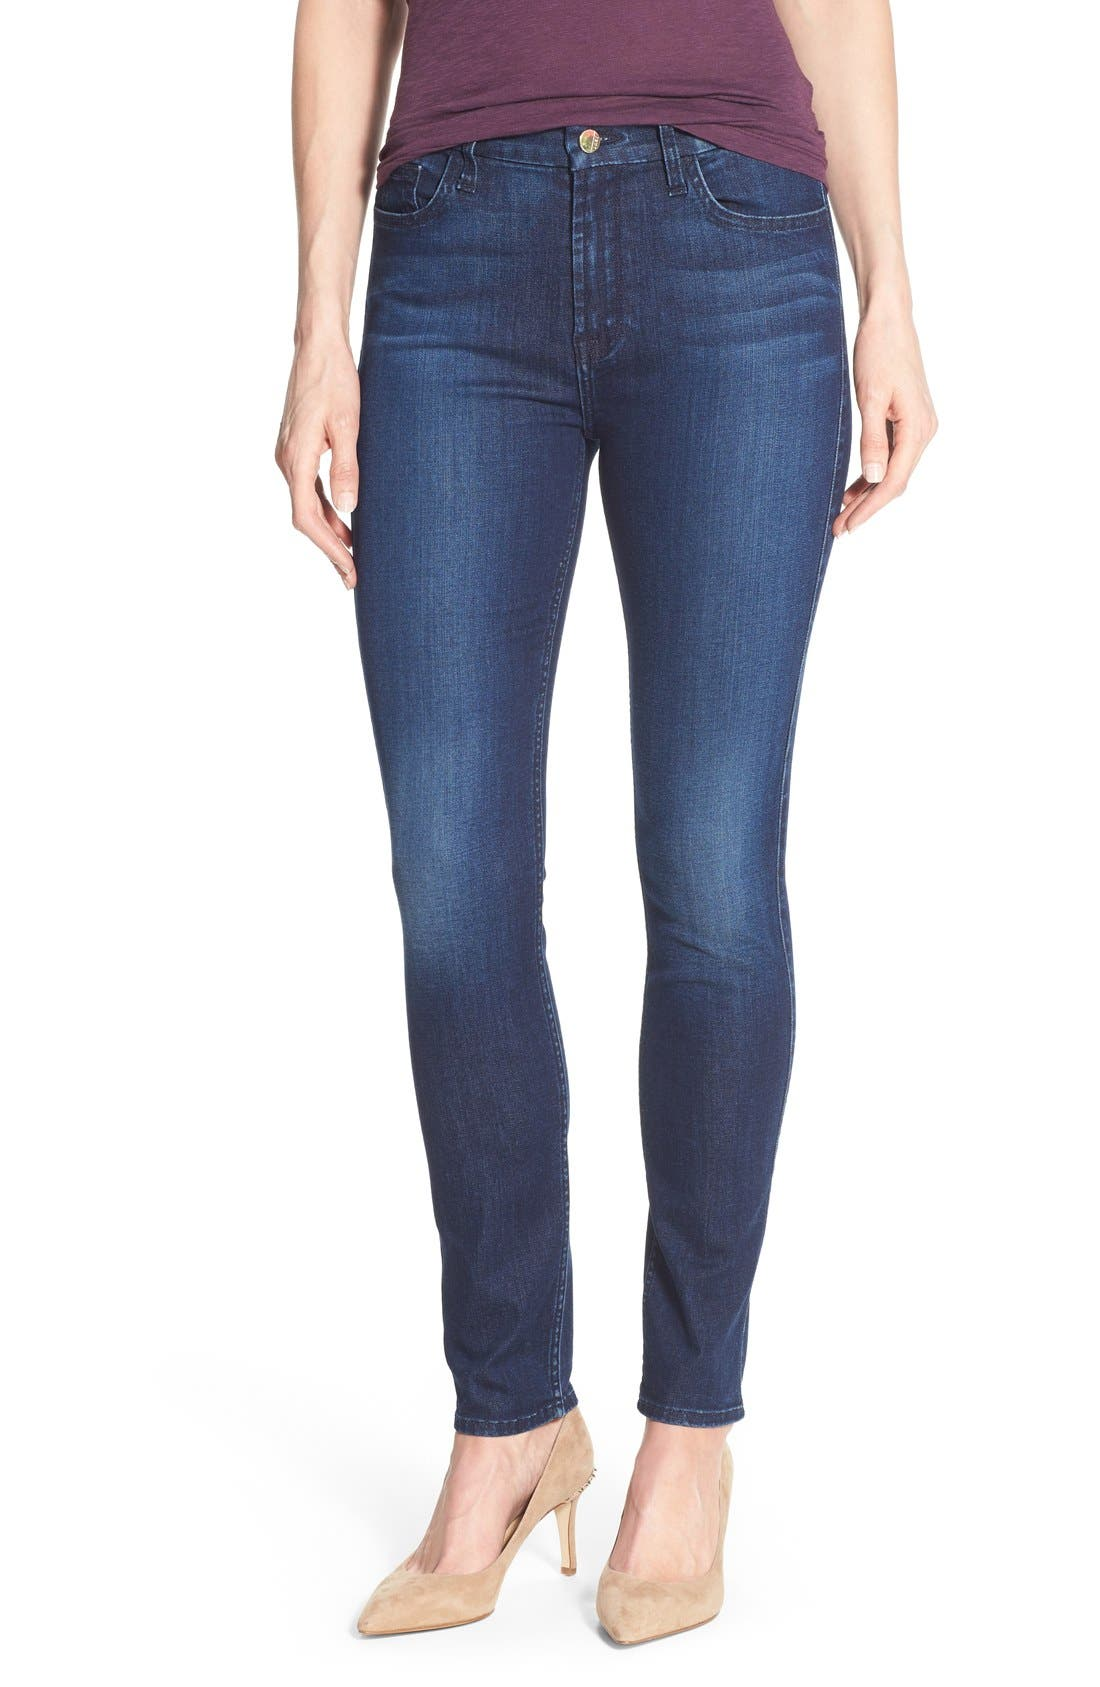 Jen7 Stretch Skinny Jeans (Imperial Blue)